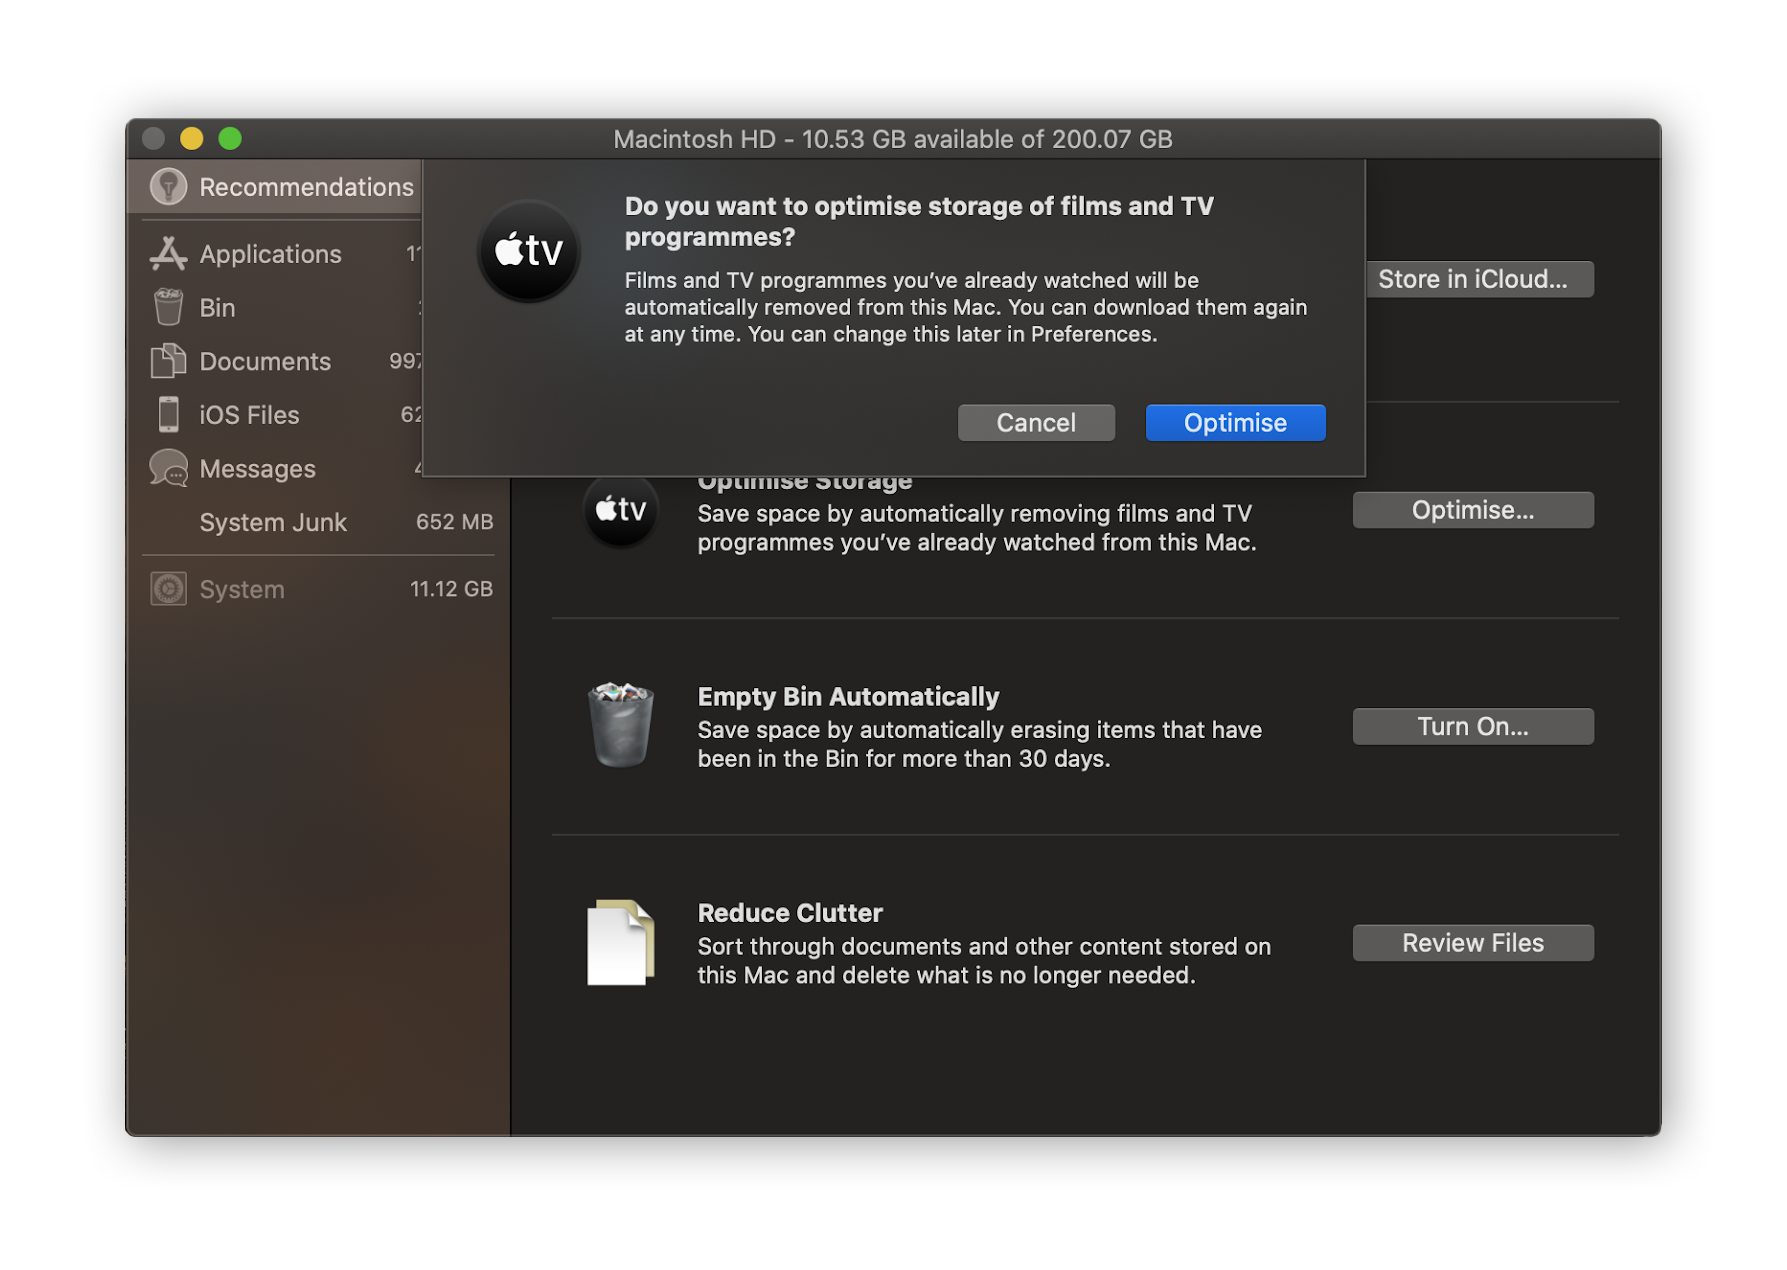 Get some space back by optimizing the storage of TV shows and films.